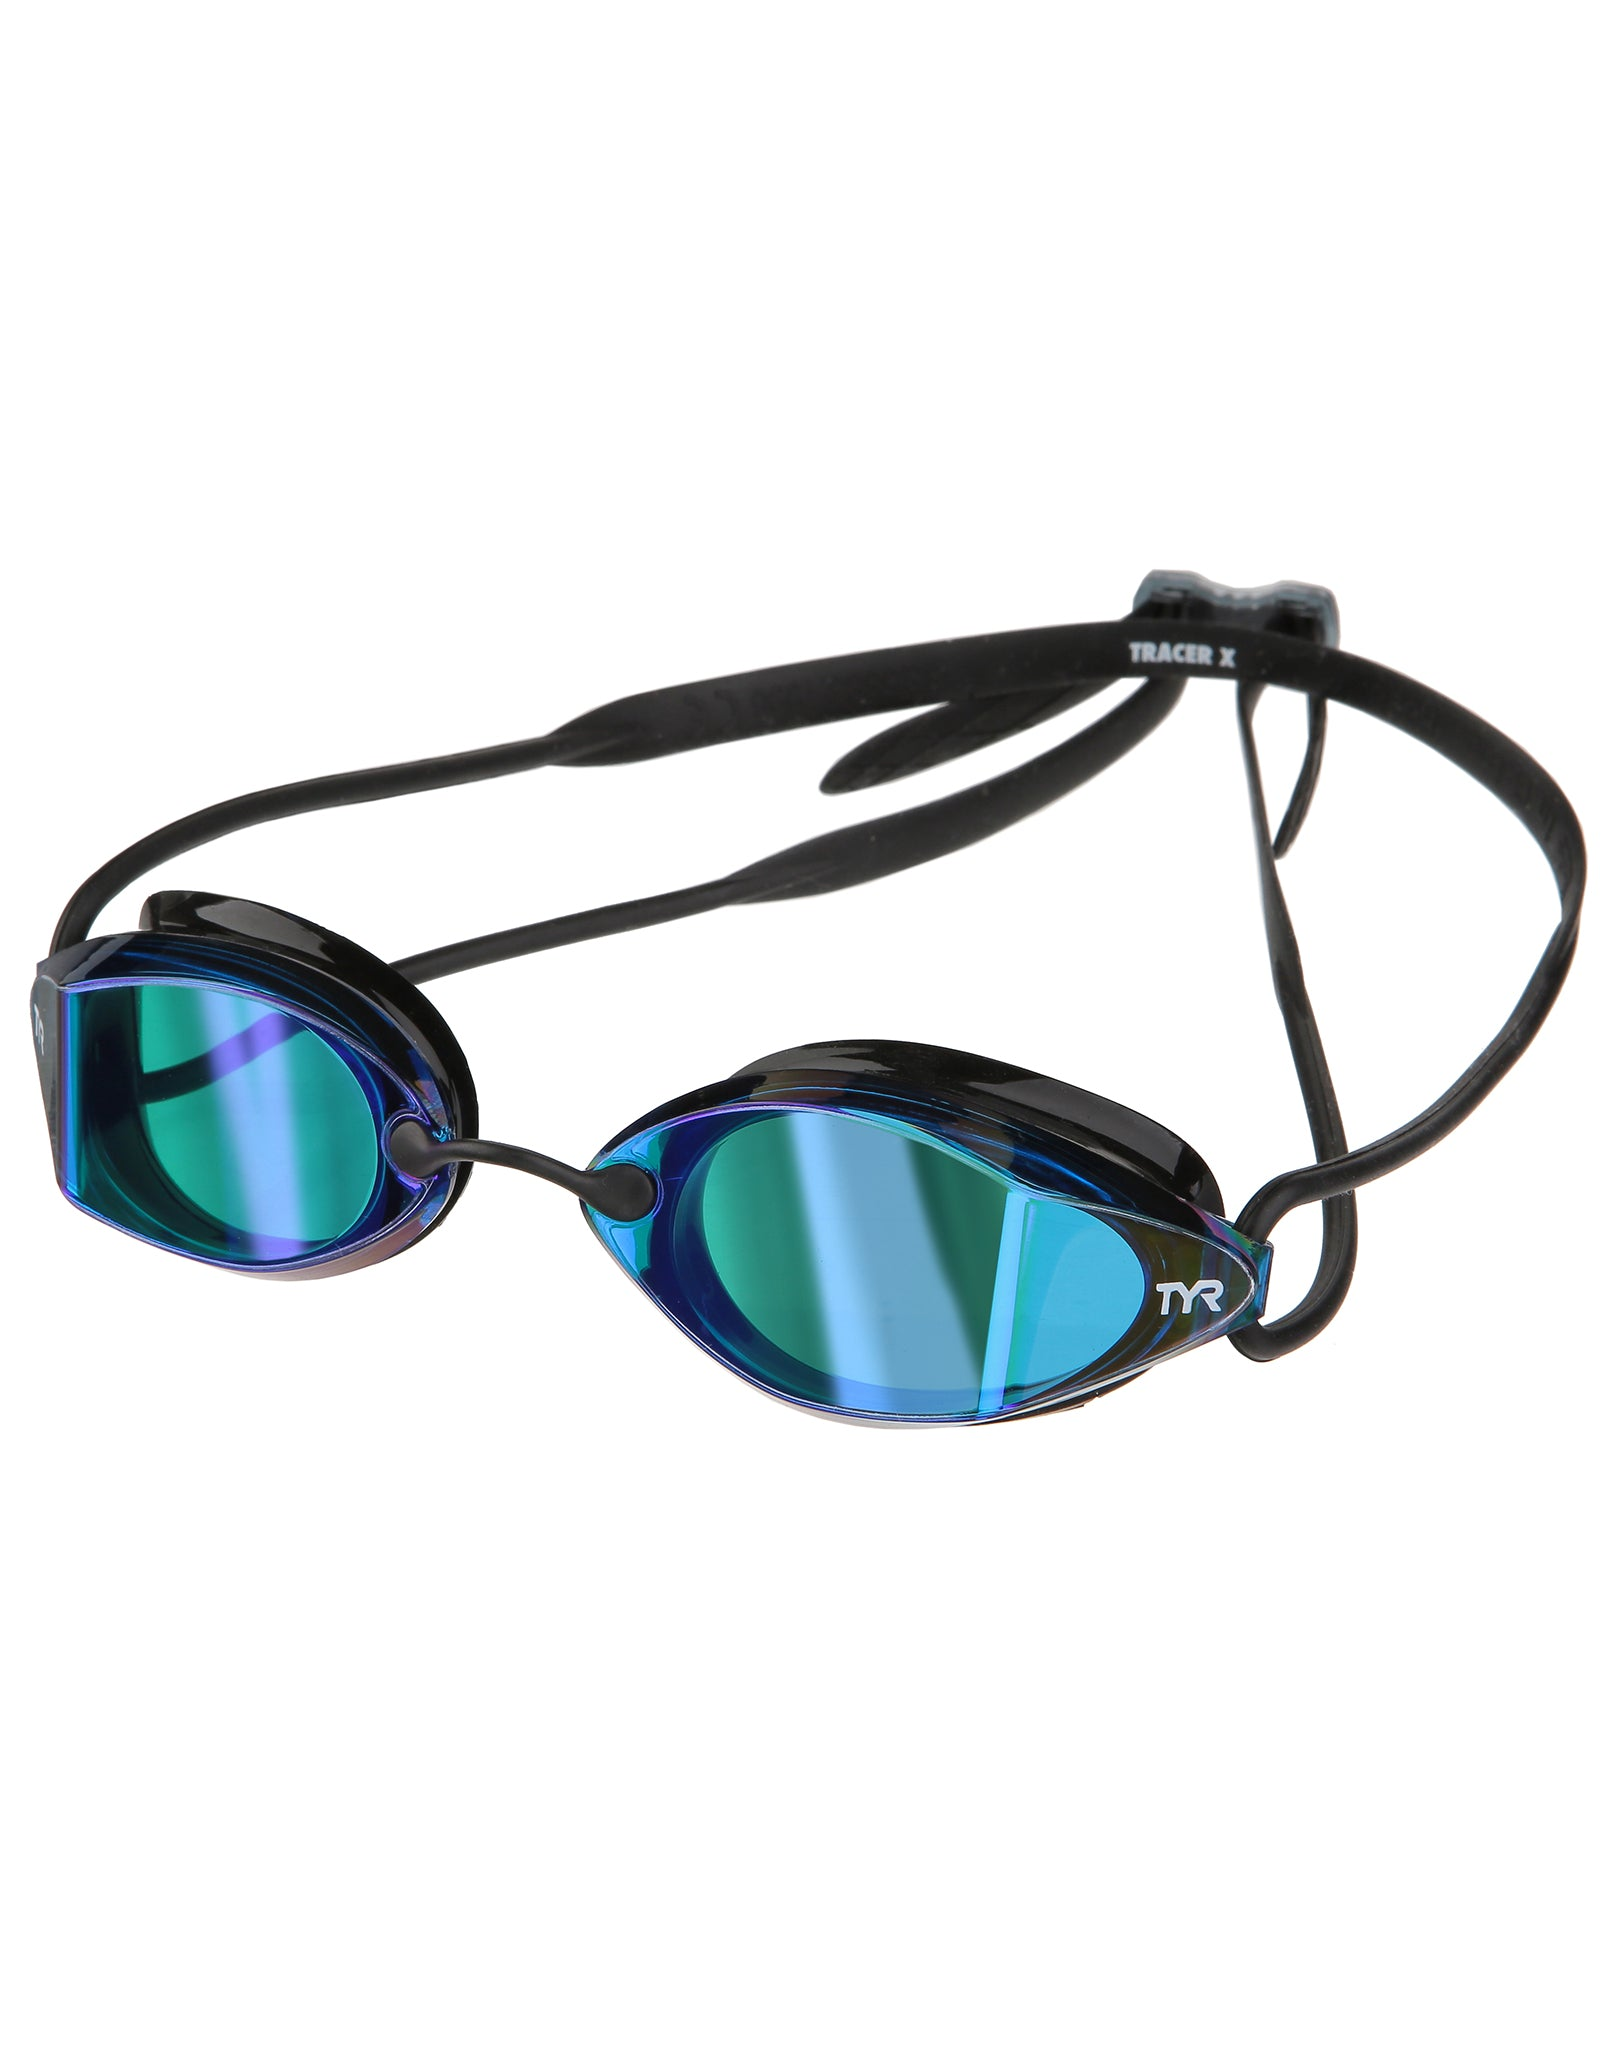 ddec569e54b Tyr Tracer X Racing Mirrored Goggle - Blue Black